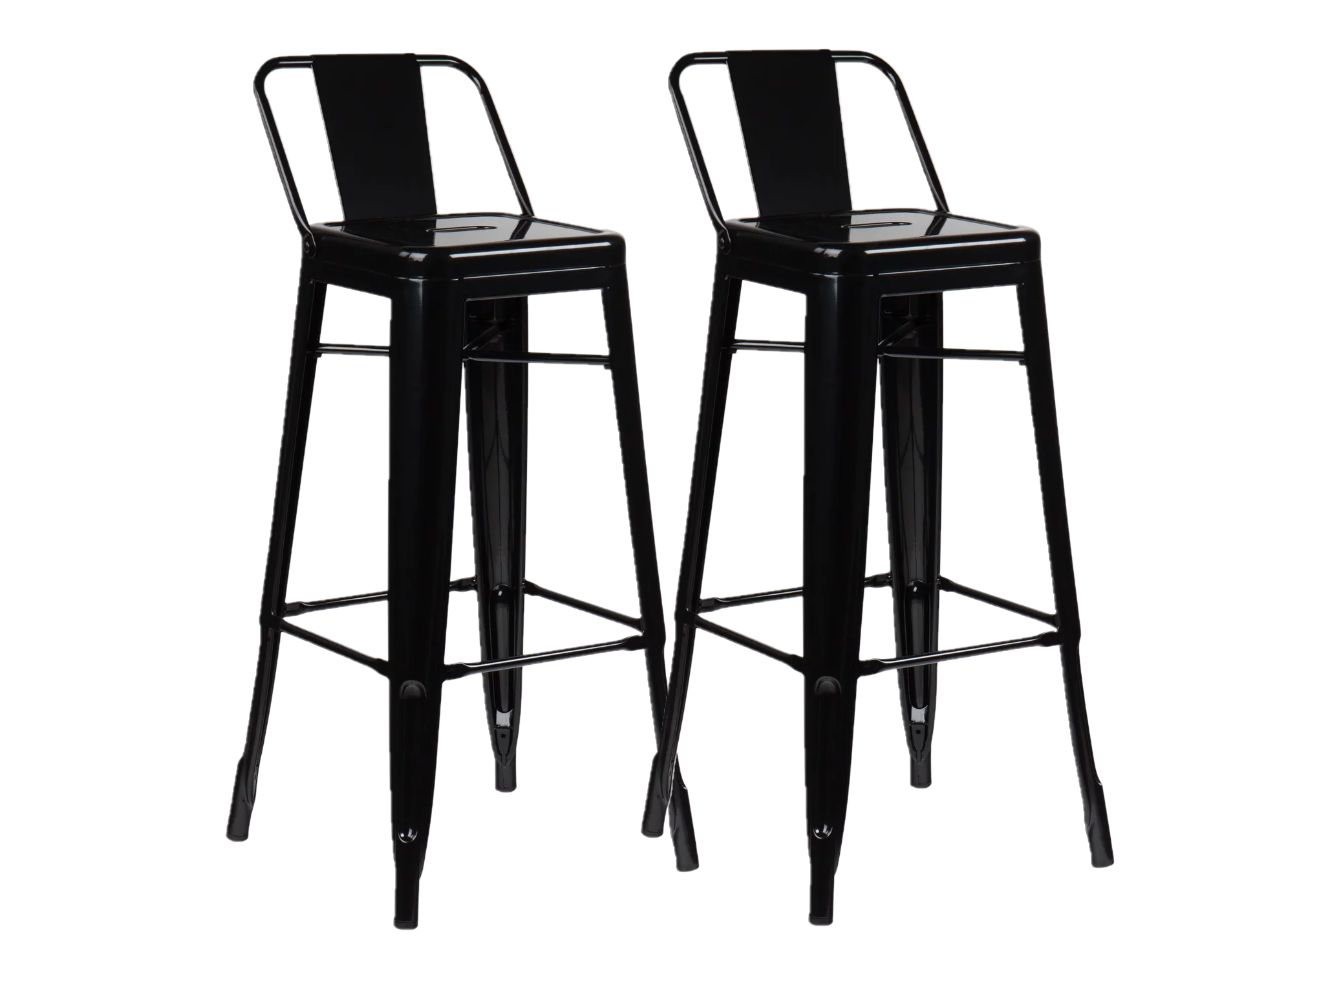 Lot de 2, Tabourets de bar métal industriel Noir